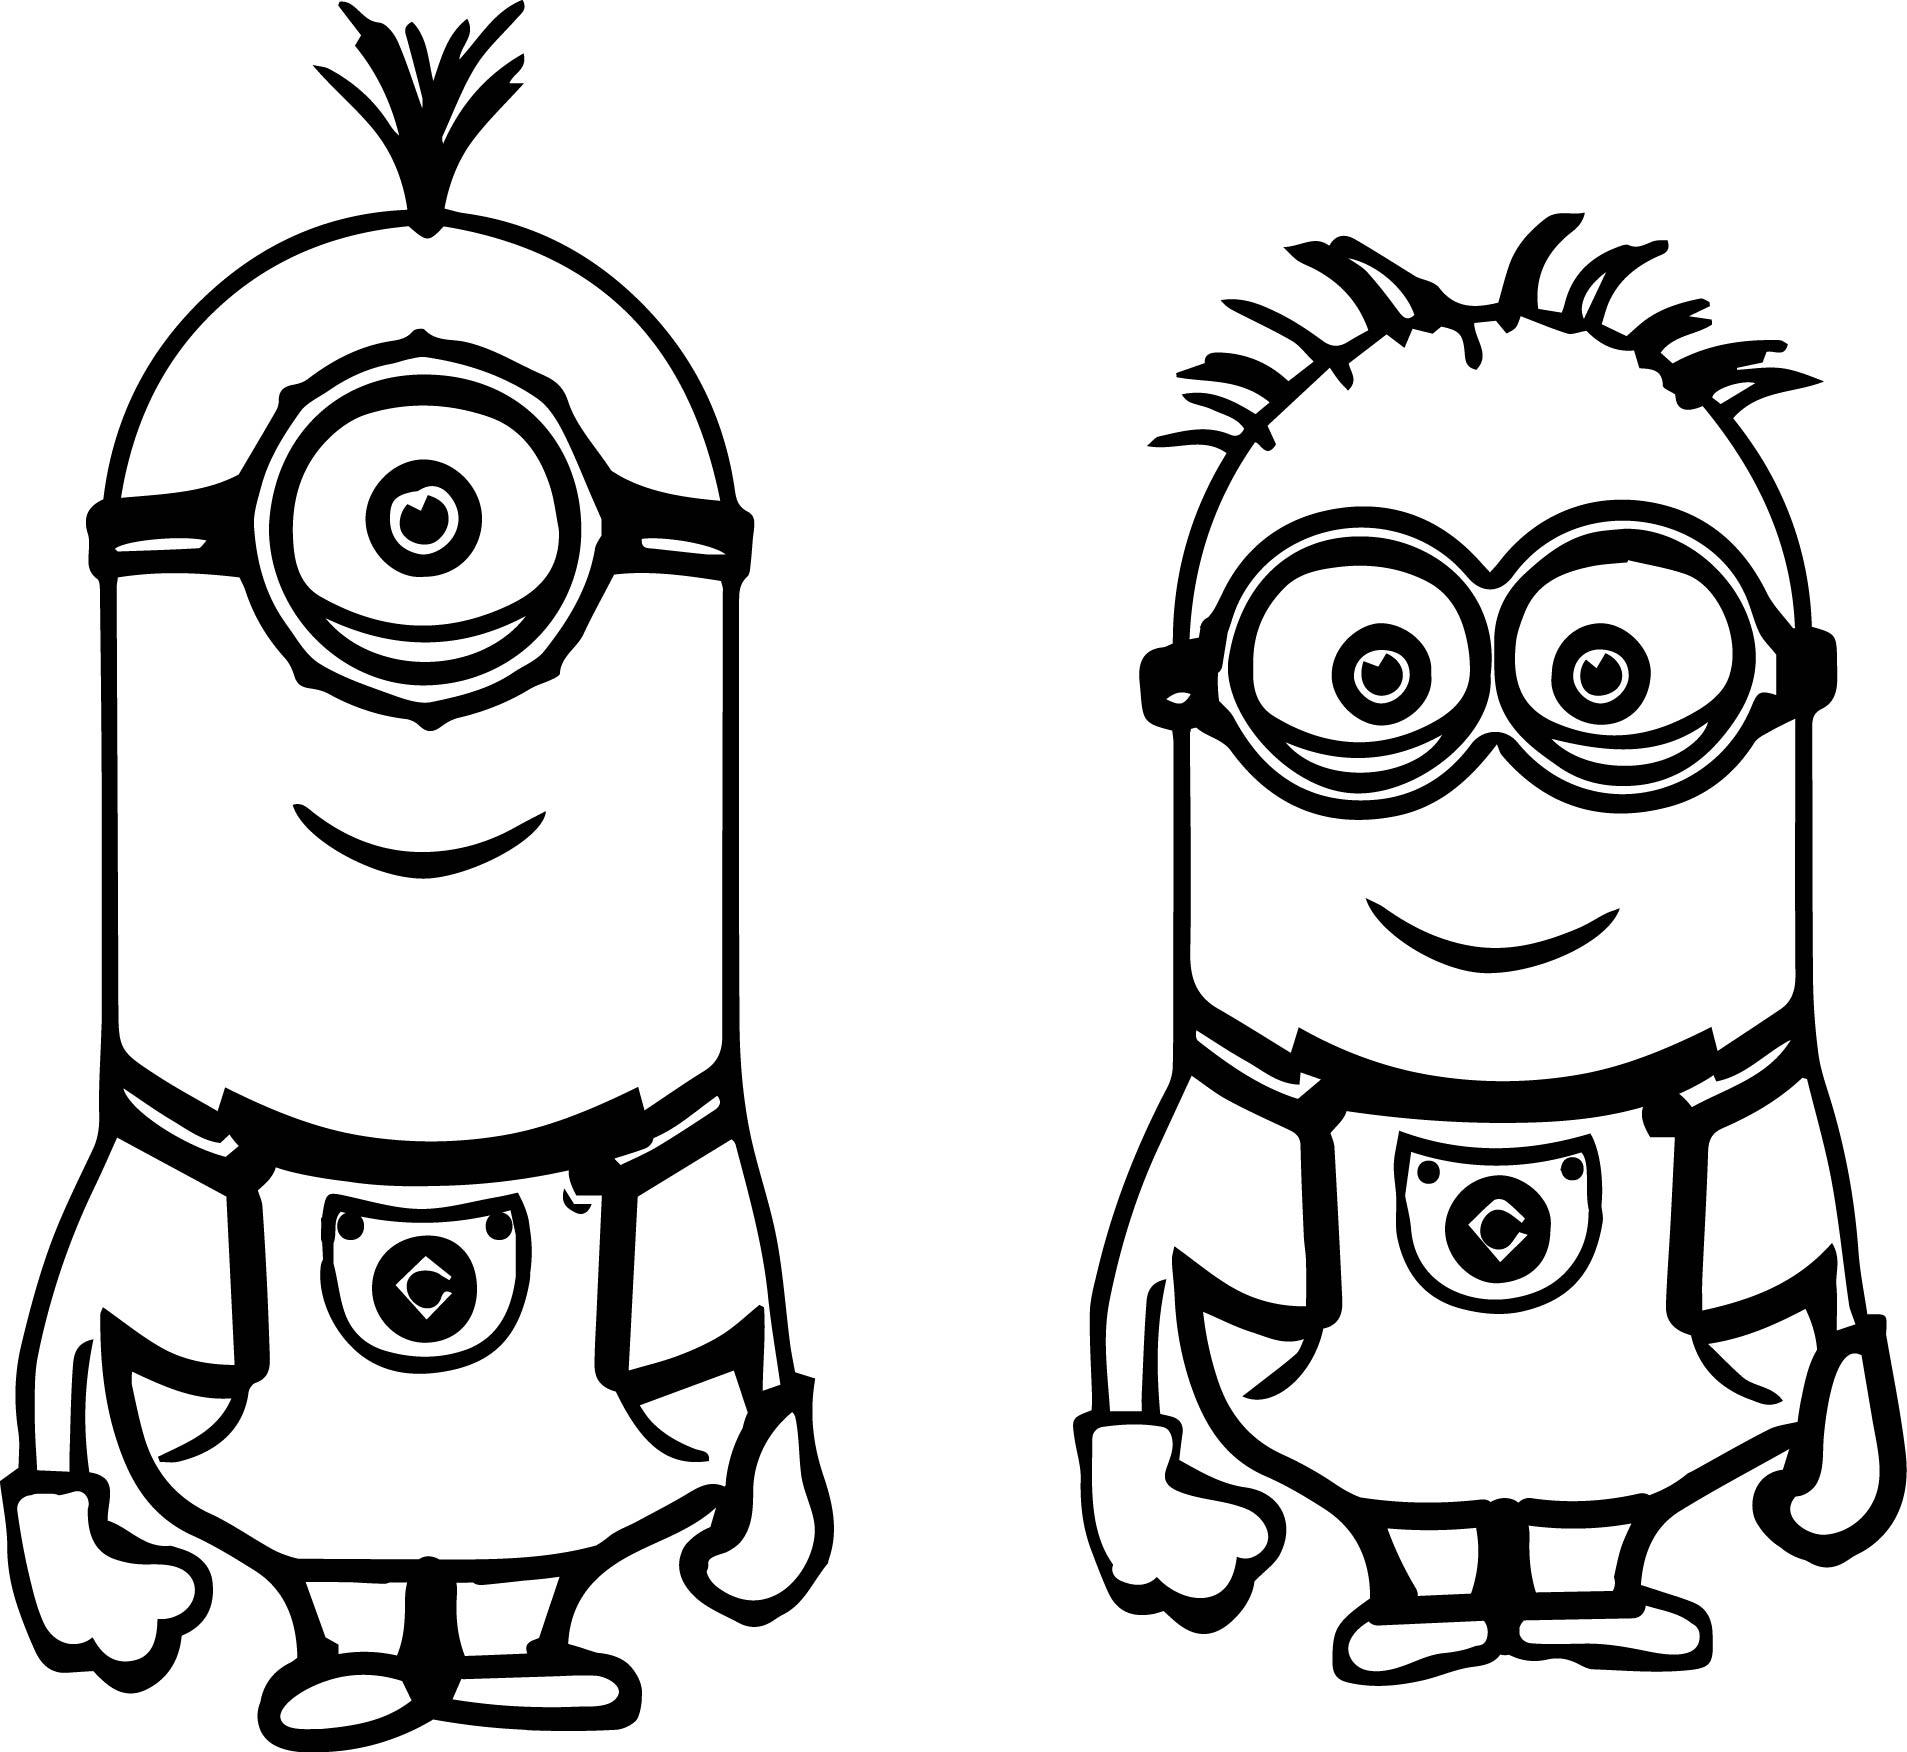 It is a graphic of Exceptional Minions Coloring Sheet